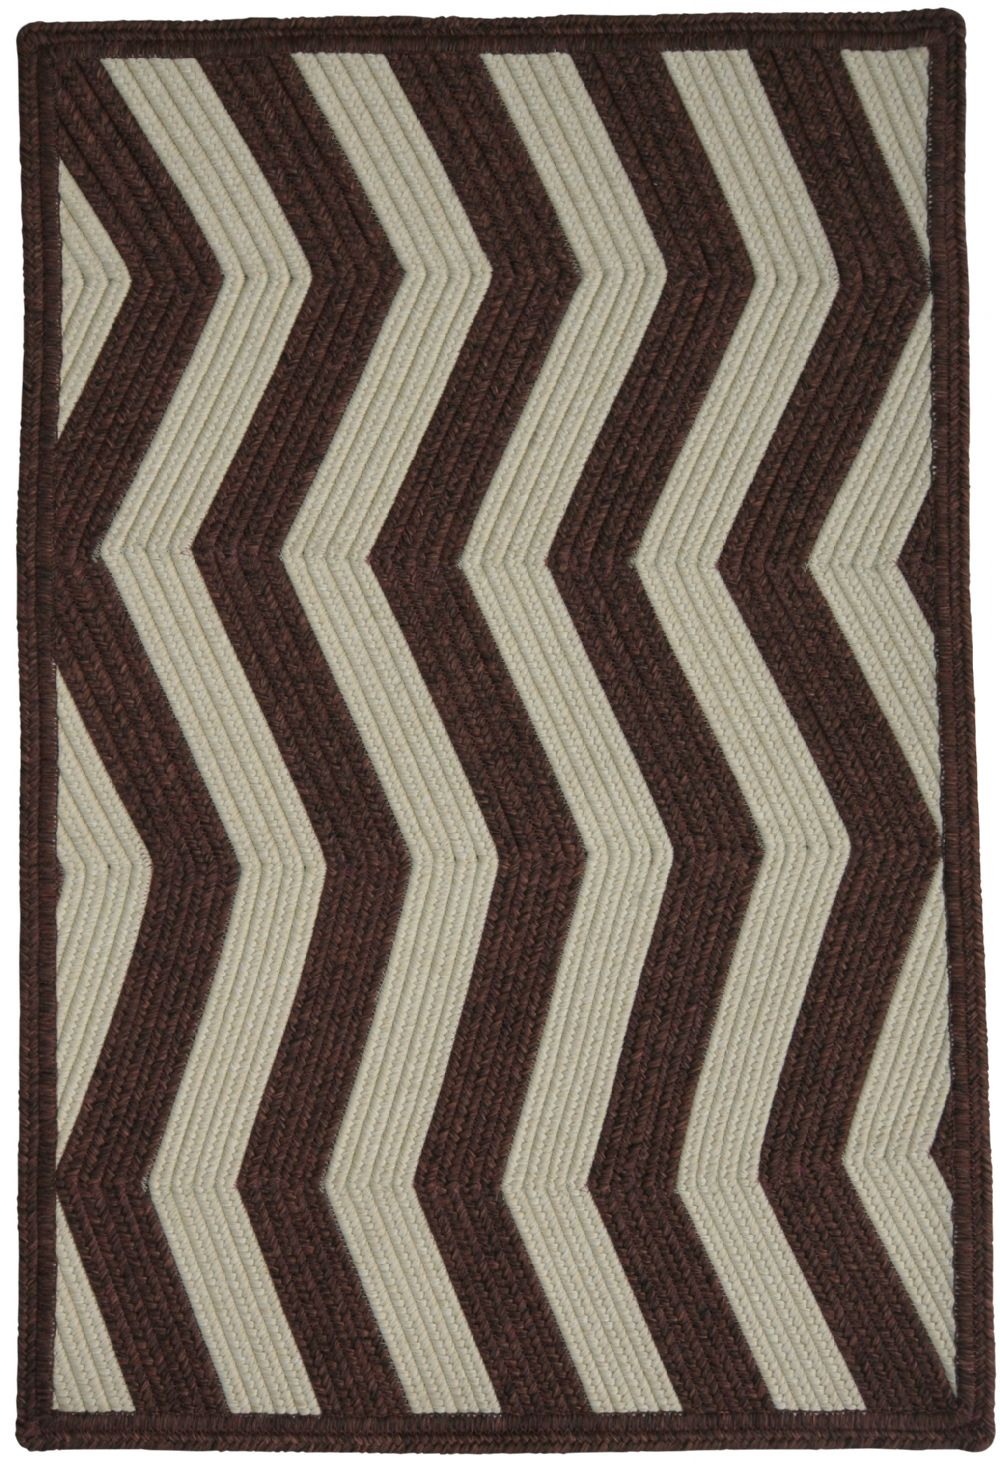 homespice decor mahogany ivory braided area rug collection